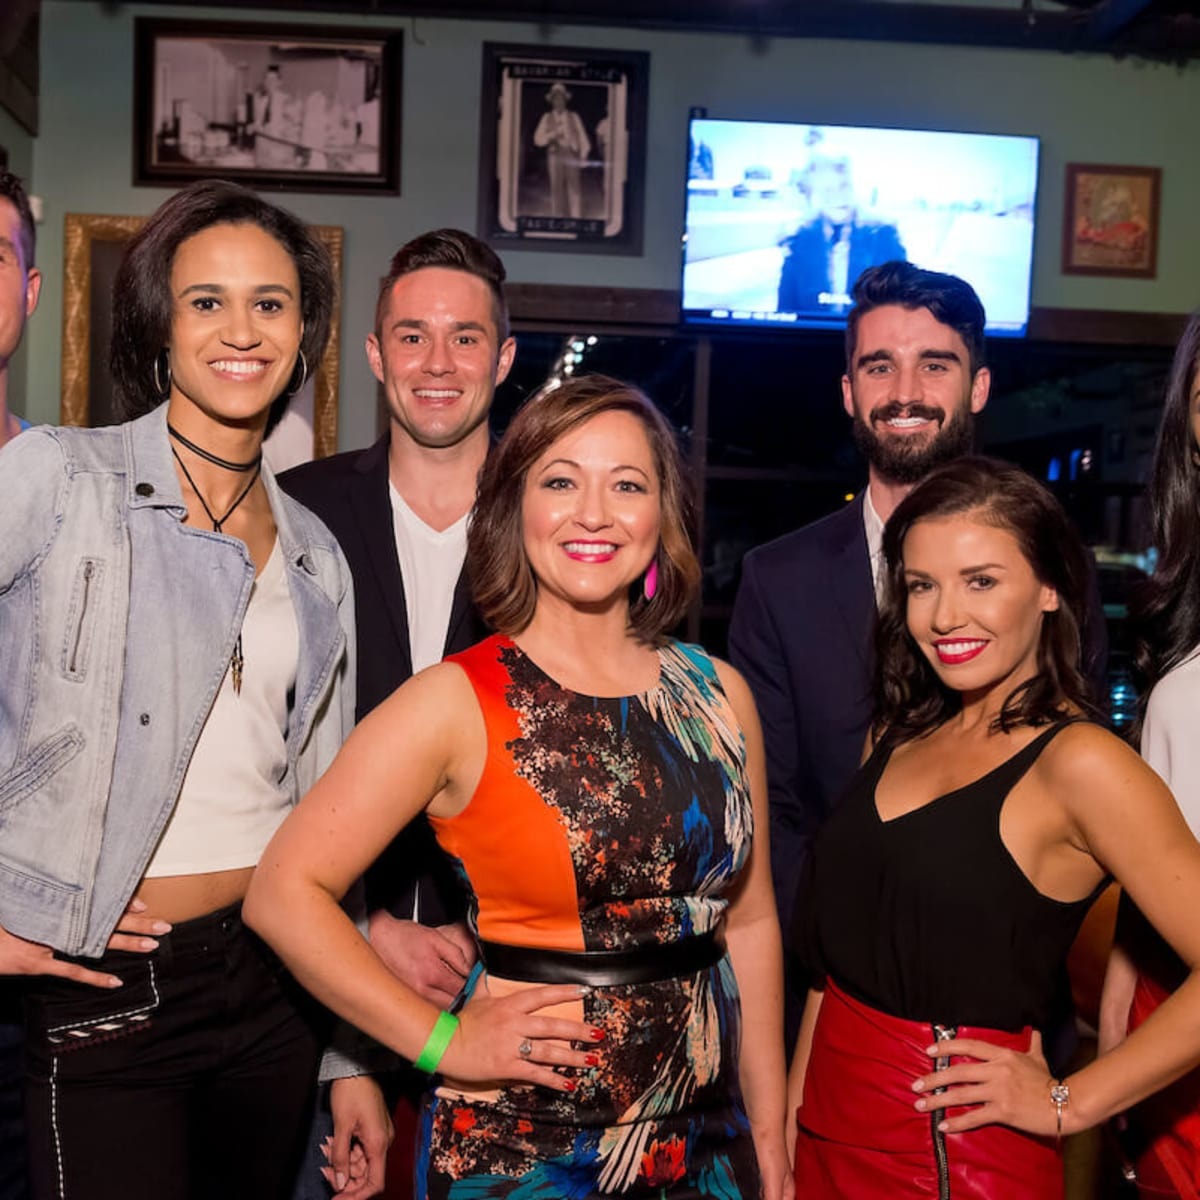 Houston, Red Buds Date Auction, Feb 2017, Karl Kremser, Alex Hendren, Michael Malthaner, Alexa Covarrubias, Lacee Jacobs, Cindy Elena Rodriguez, Dalia Orlenas